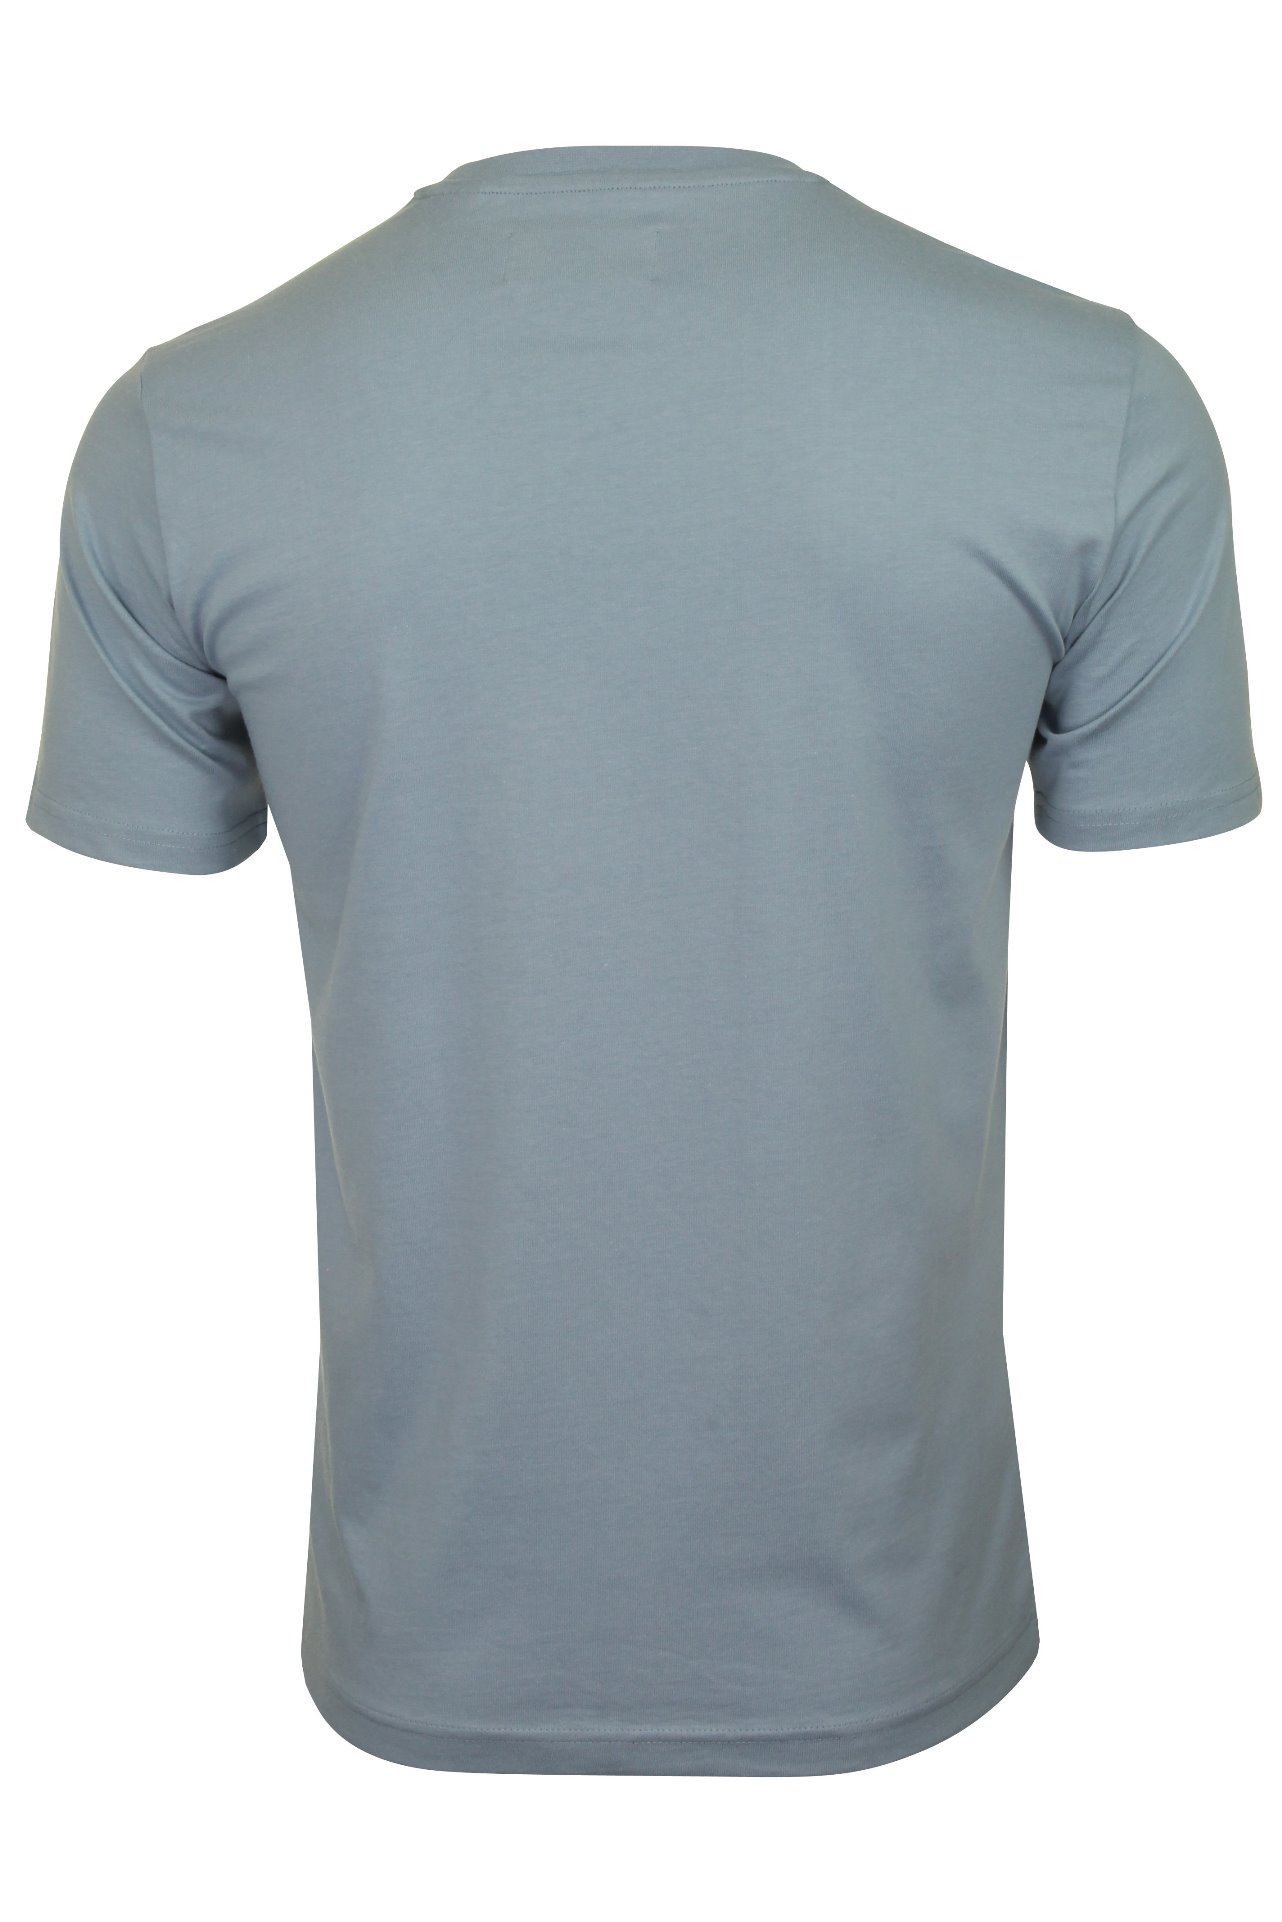 Original-Penguin-Mens-T-Shirt-039-Pin-Point-Embroidered-039-Short-Sleeved thumbnail 11